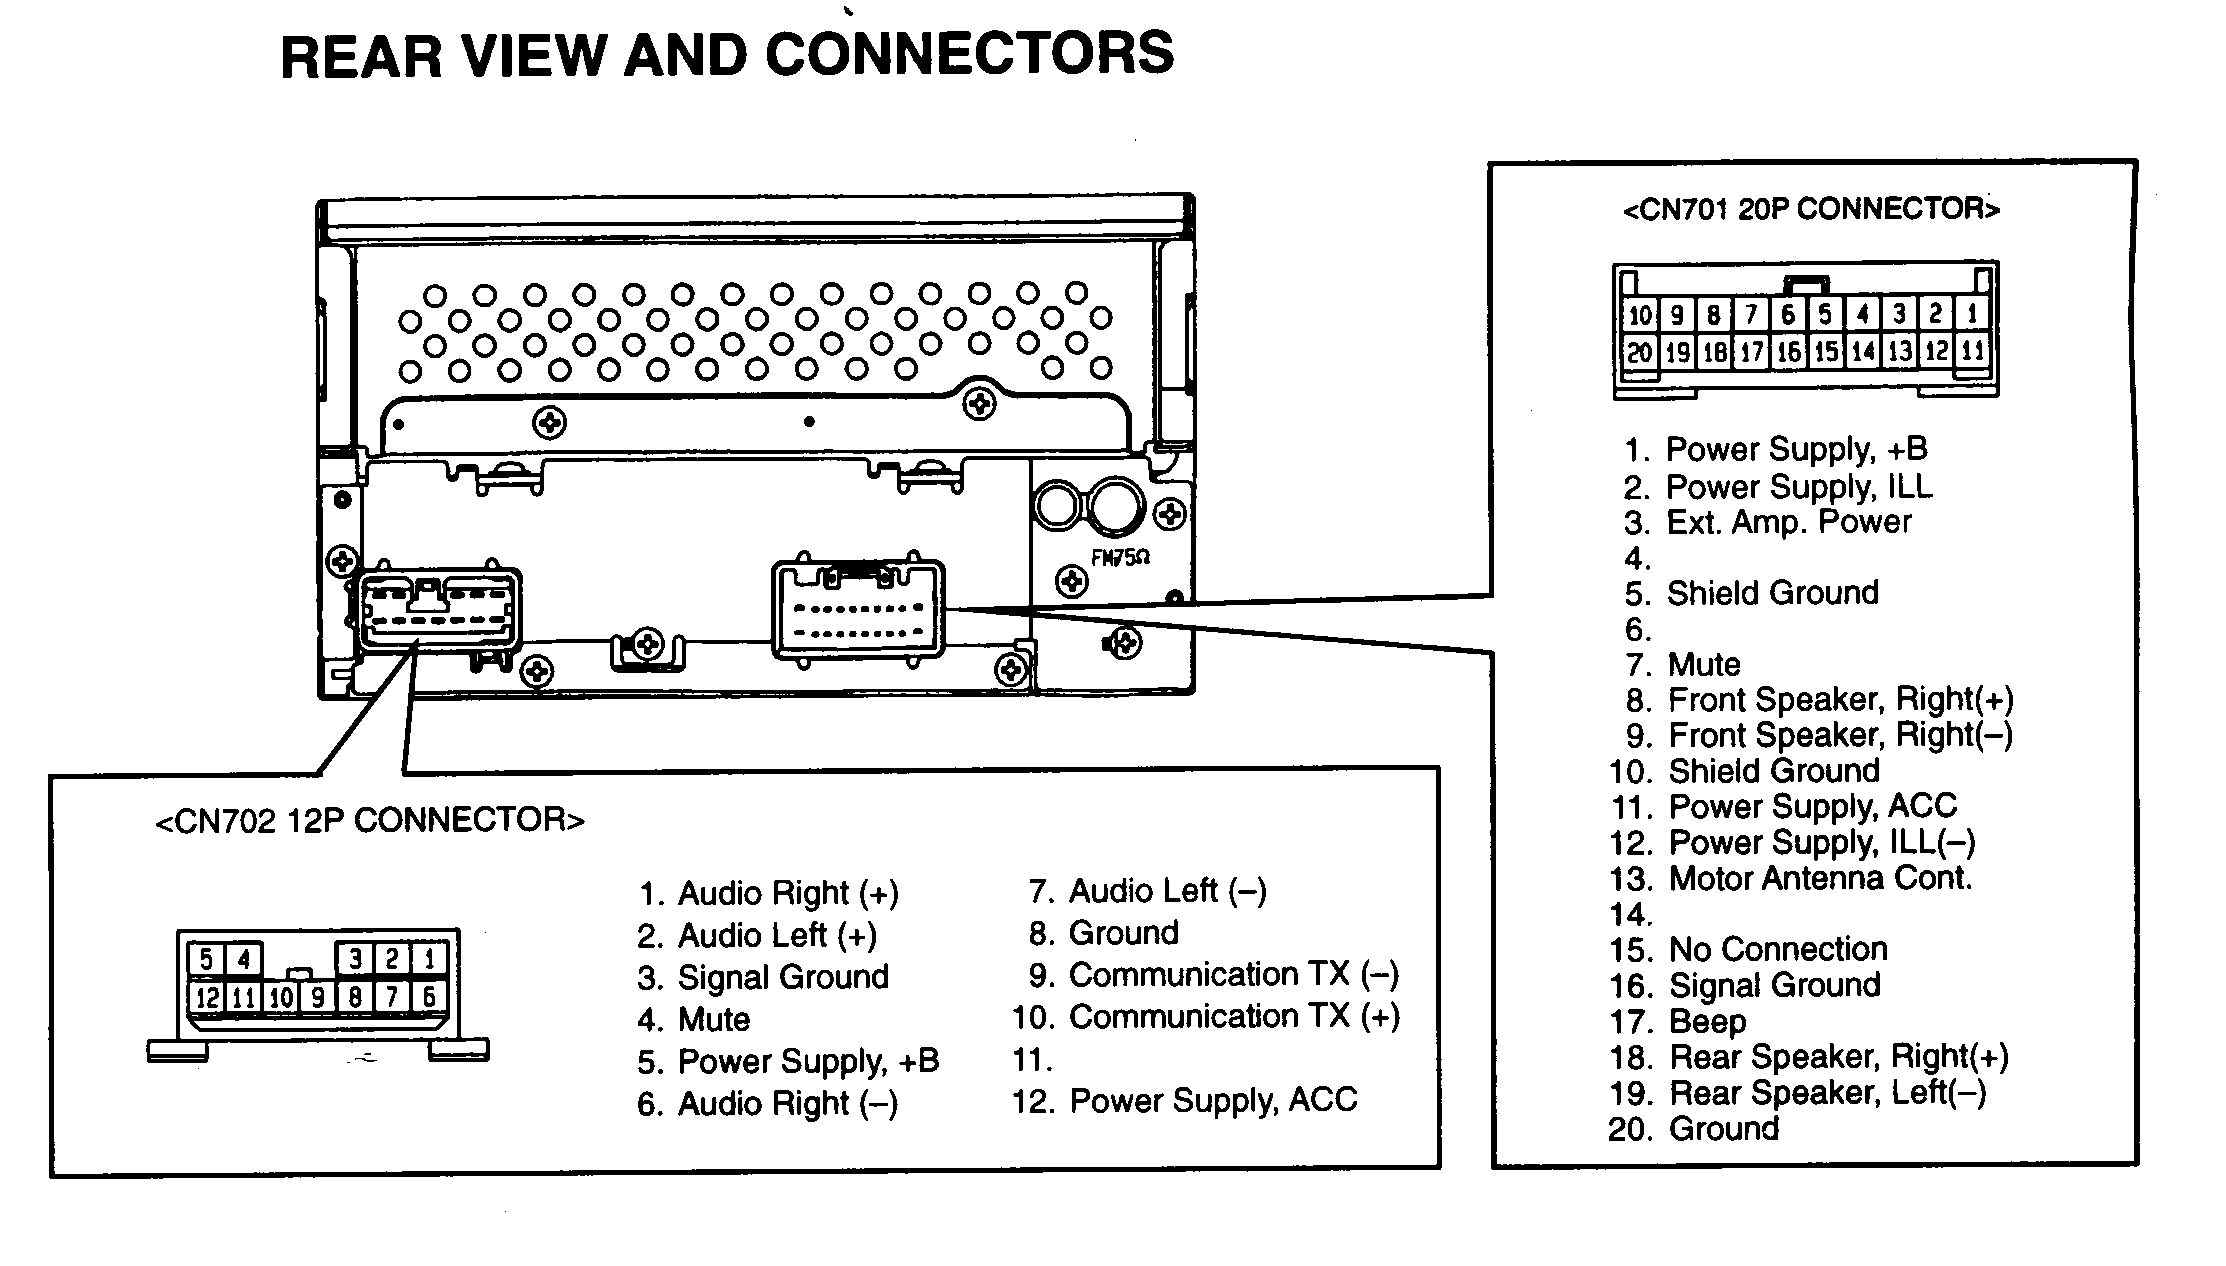 2000 Bose Wiring Diagram Reinvent Your 1993 Acura Legend Belt Schematic Car Stereo Mazda Detailed Schematics Rh Keyplusrubber Com Cadillac Escalade Maxima